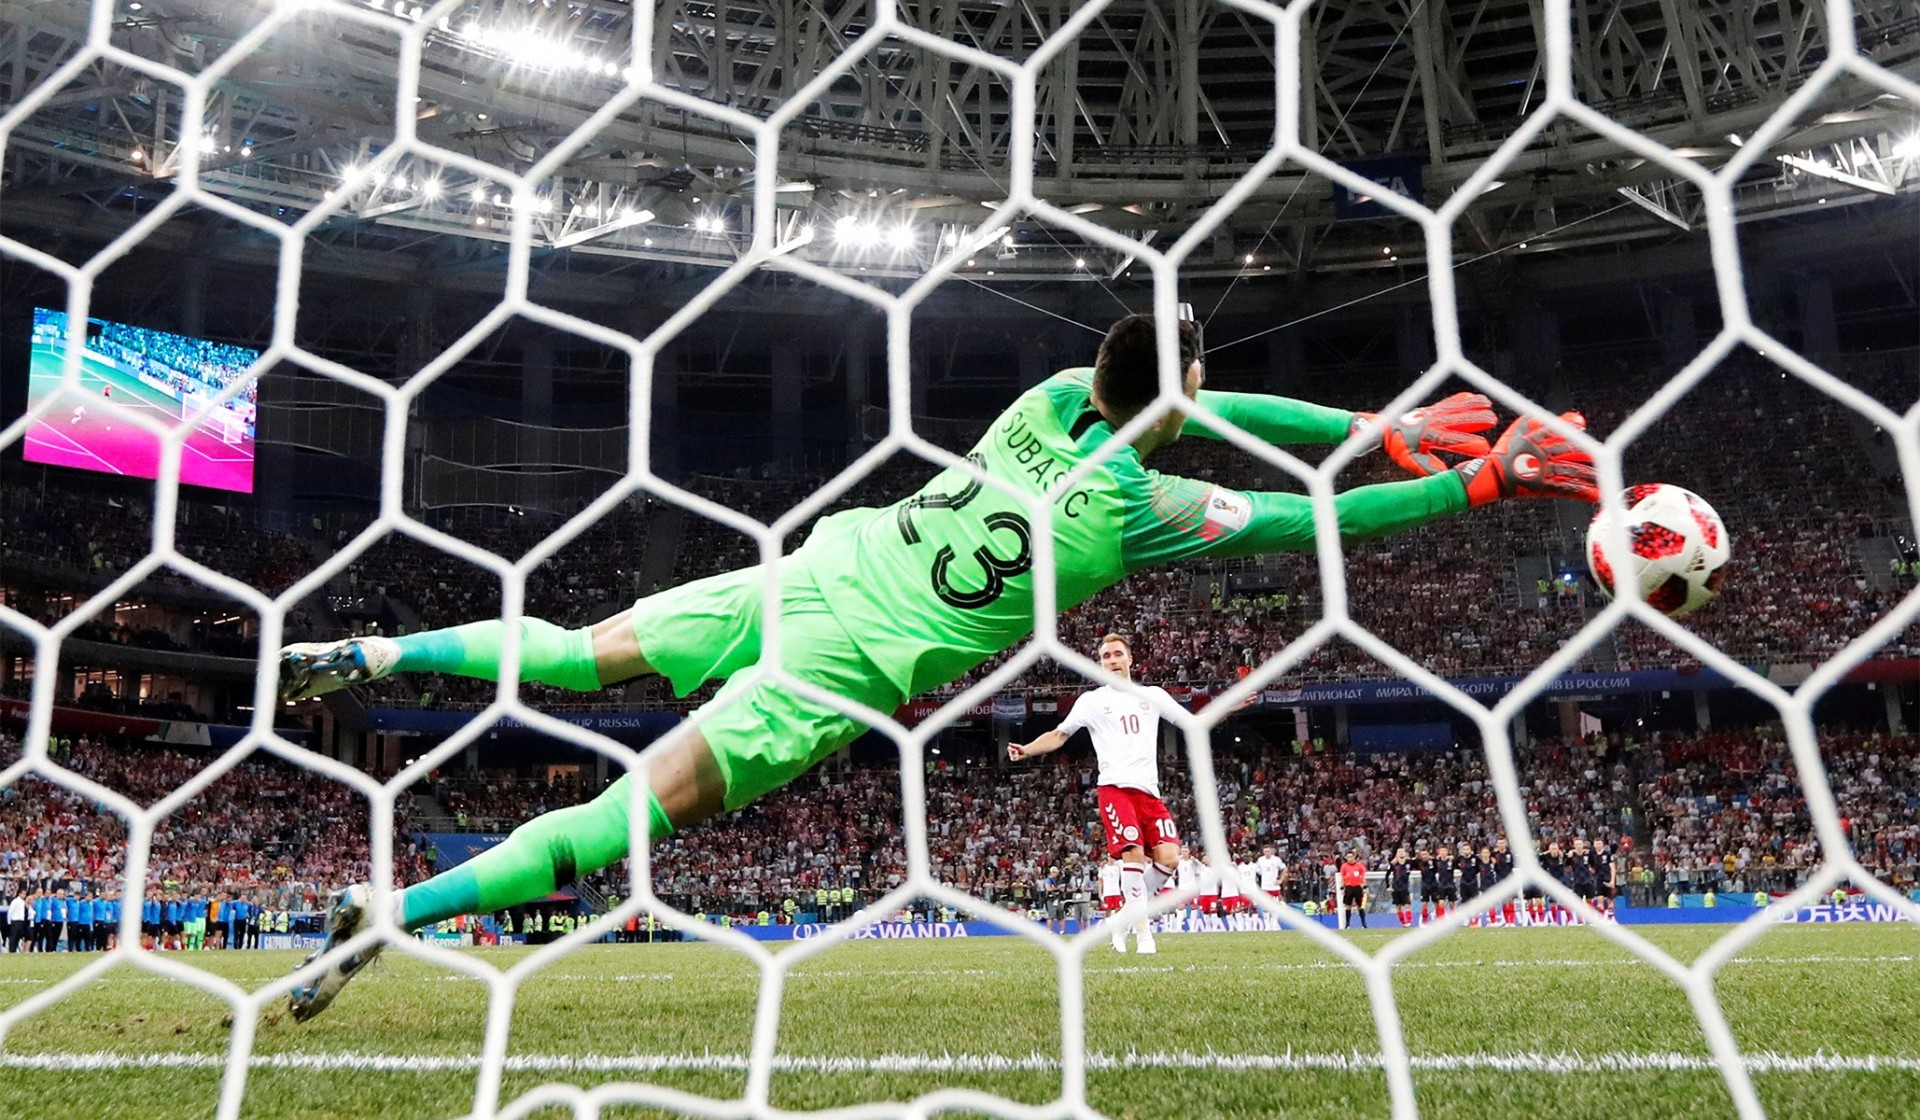 020 Soccer Vs Football Compare And Contrast Essay Example World Cup Excellent 1920